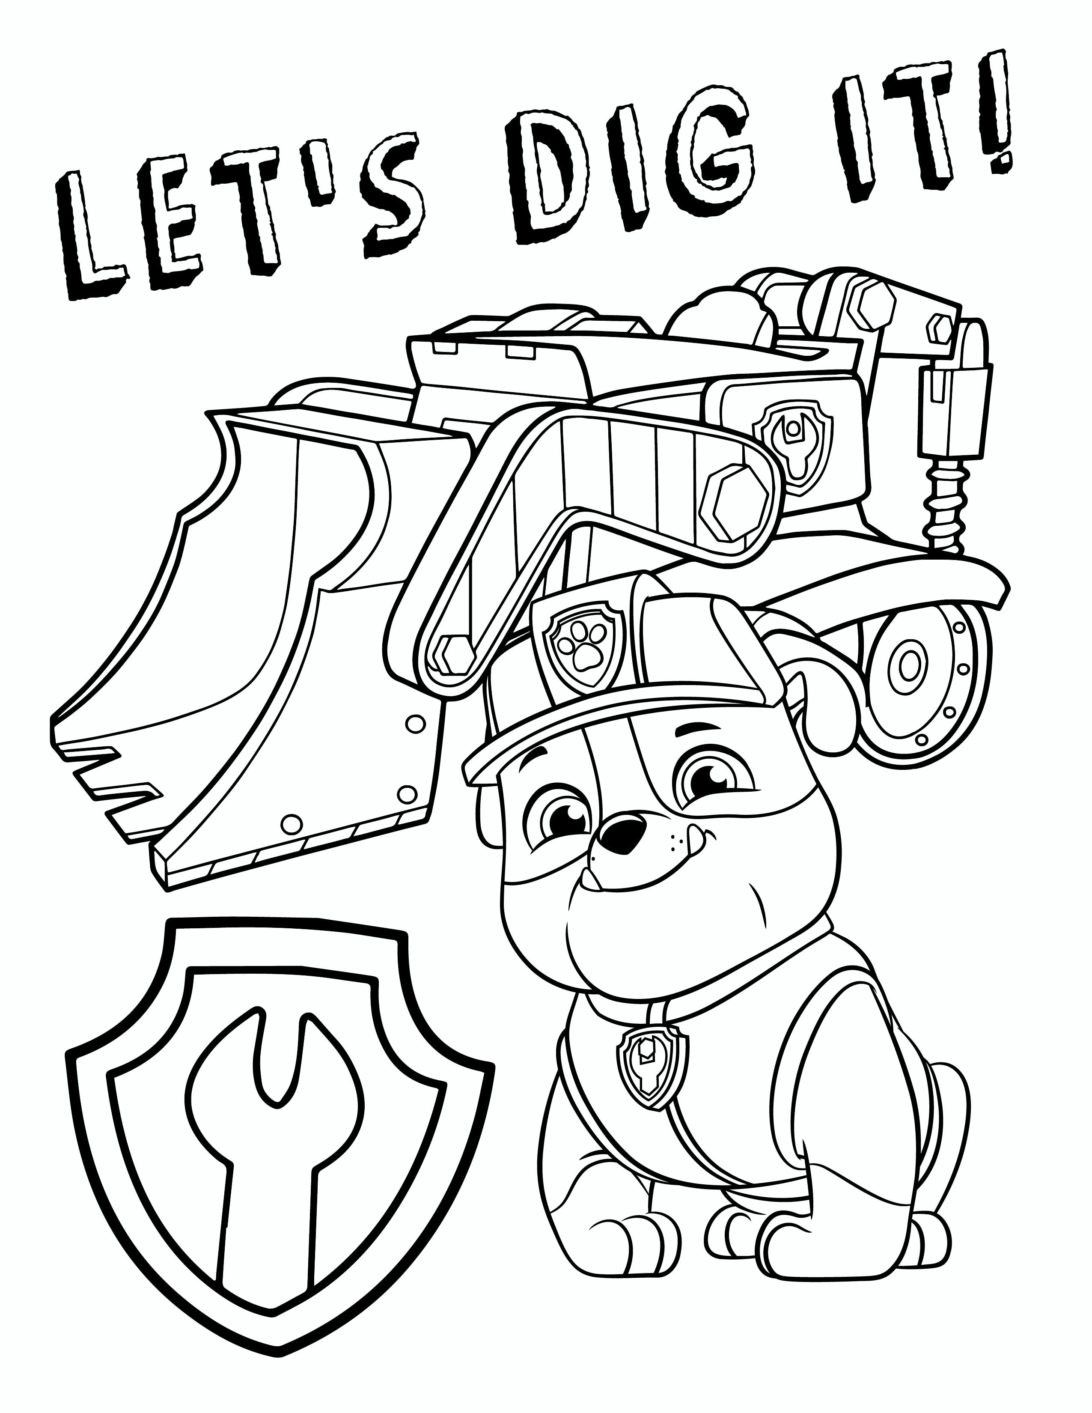 Tracker Paw Patrol Coloring Page Youngandtae Com In 2020 Paw Patrol Coloring Pages Paw Patrol Coloring Paw Patrol Printables